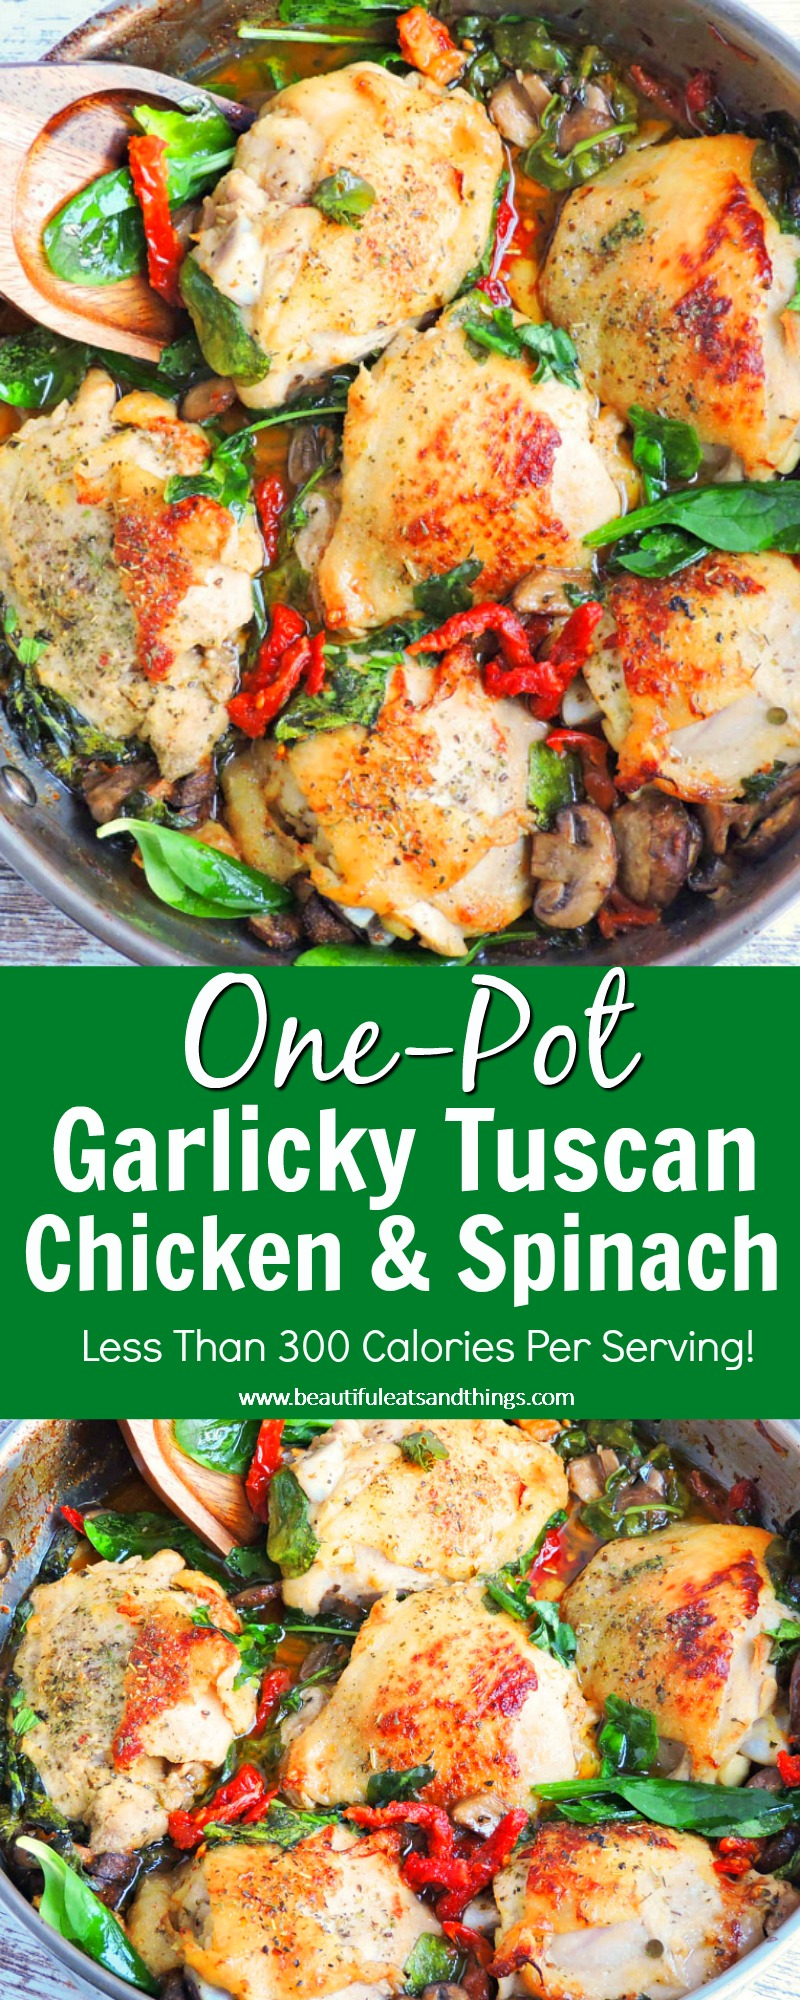 One Pot Garlicky Tuscan Chicken & Spinach made with white white, mushrooms, garlic, and sun dried tomatoes served in a stainless steel dutch oven with spinach and a wooden spoon on top